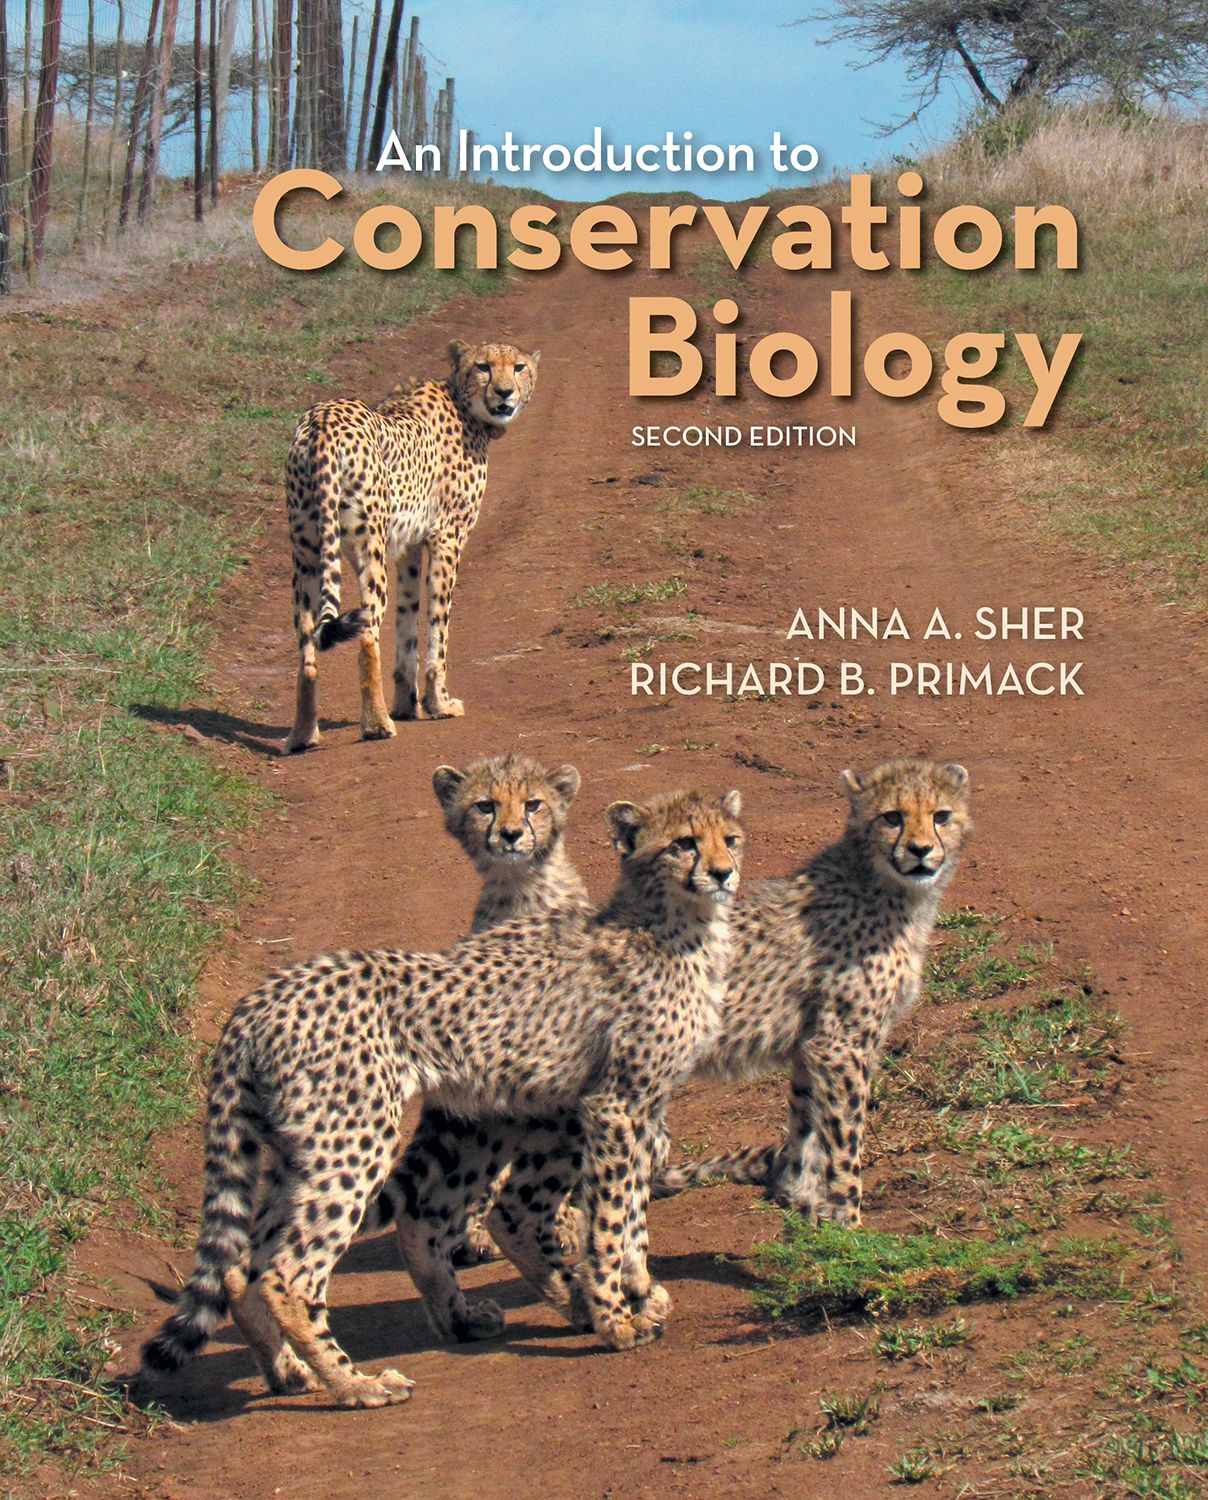 An Introduction to Conservation Biology 2e Instructor Resources